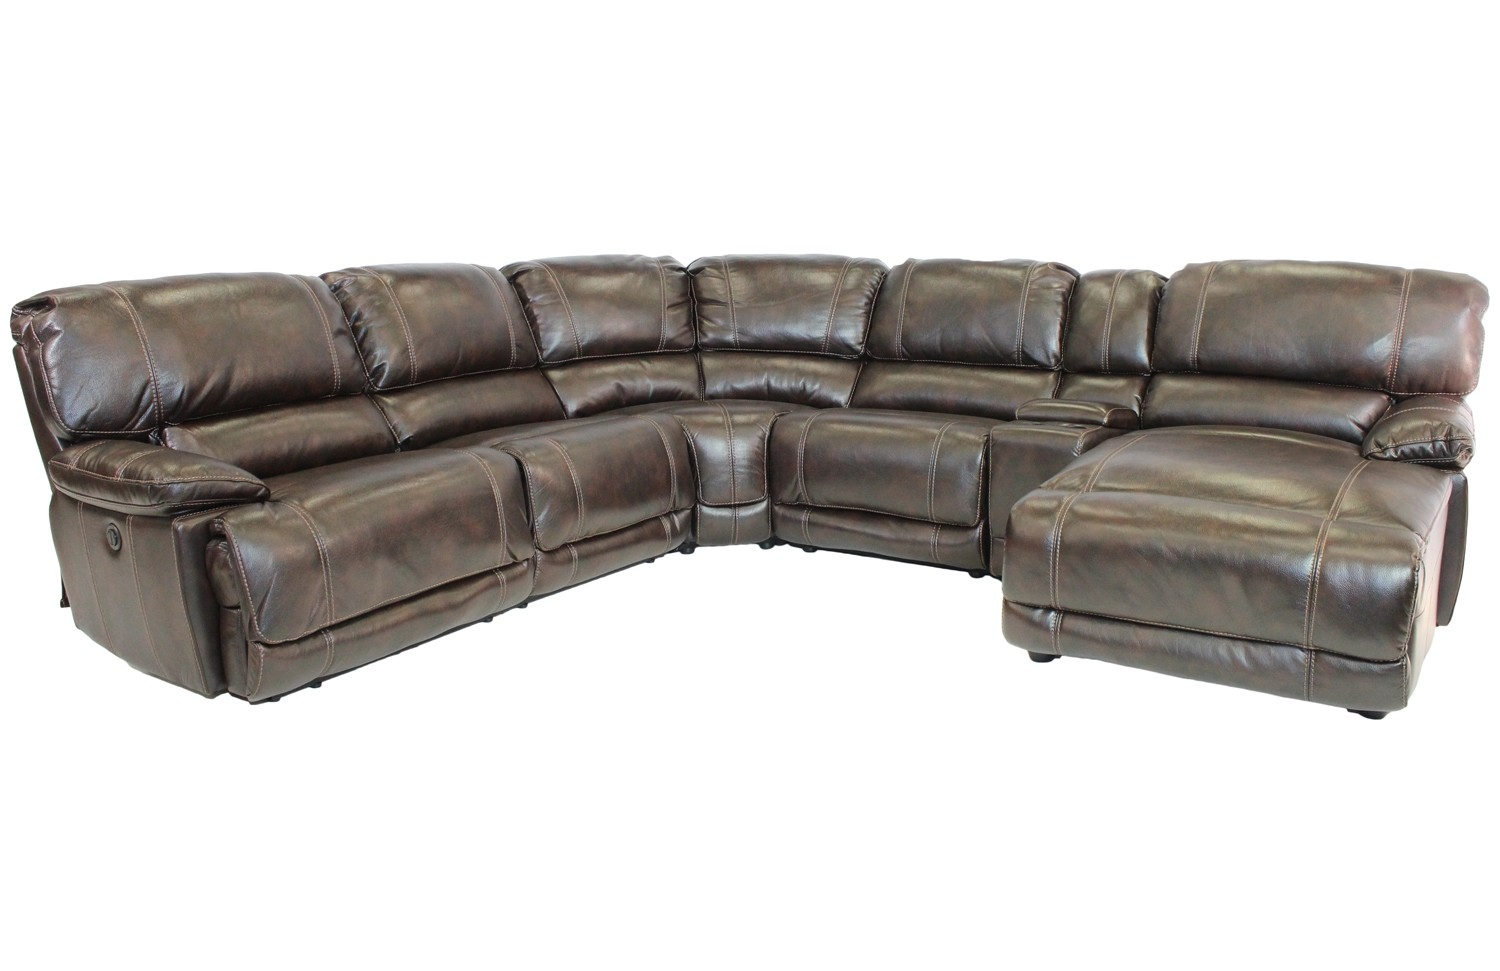 Sofa L 2 X 2 Sectional Sofas Mor Furniture For Less